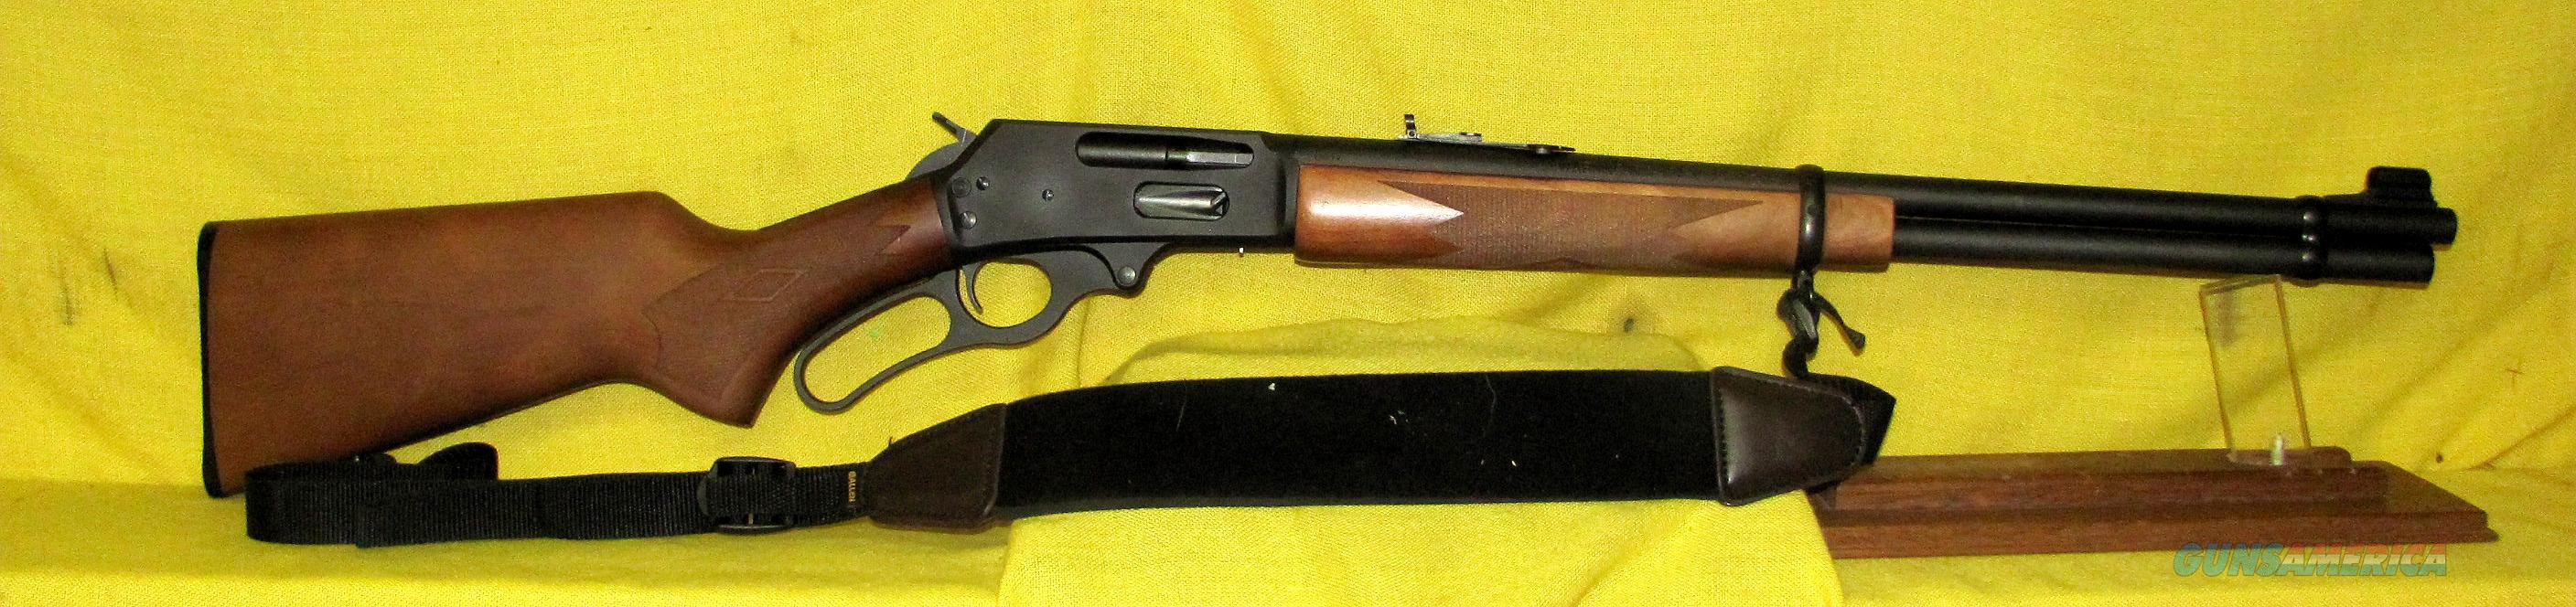 MARLIN 336W  Guns > Rifles > Marlin Rifles > Modern > Lever Action